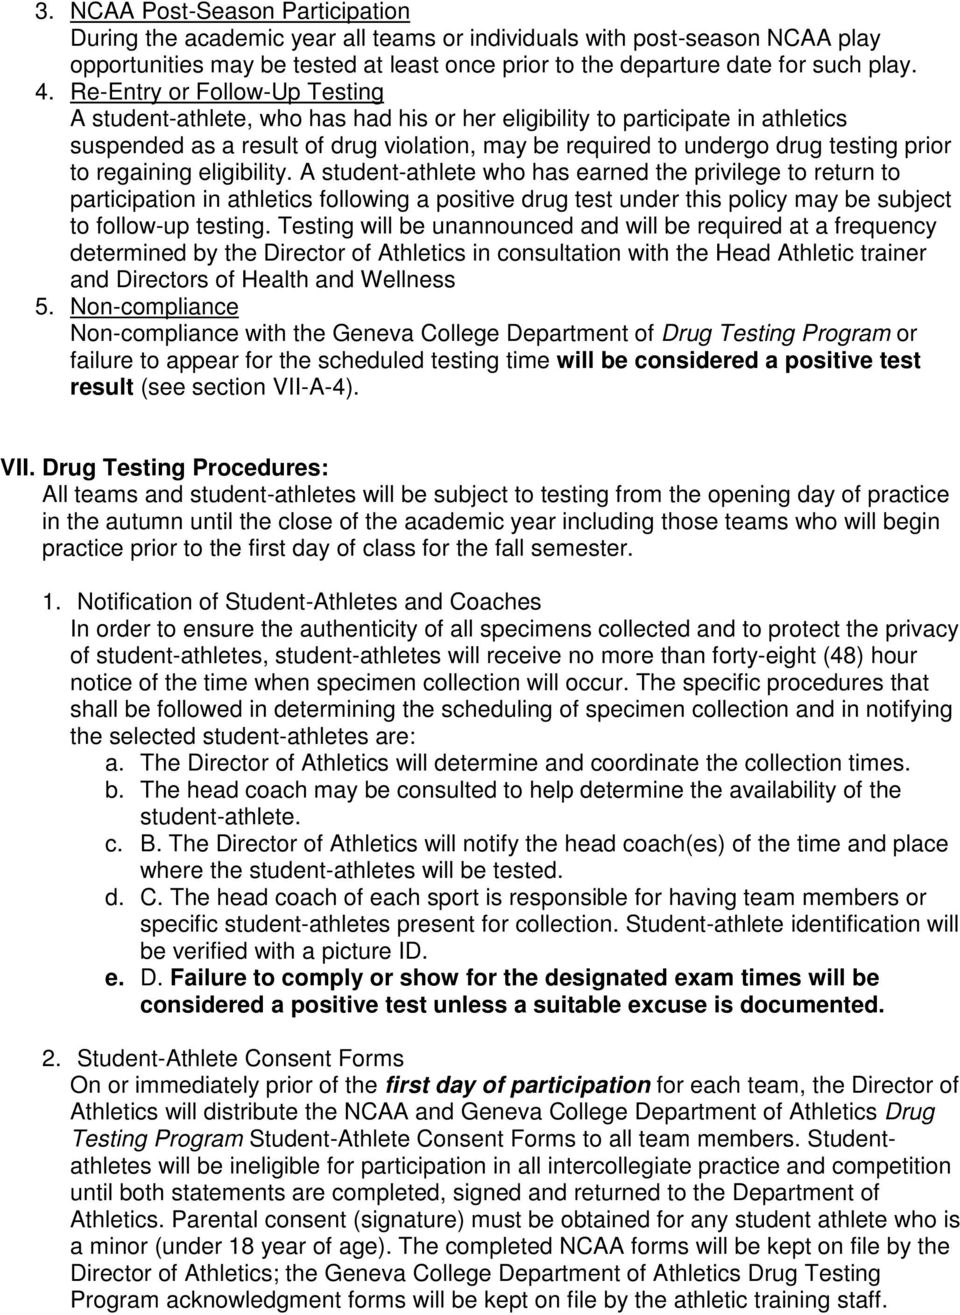 to regaining eligibility. A student-athlete who has earned the privilege to return to participation in athletics following a positive drug test under this policy may be subject to follow-up testing.